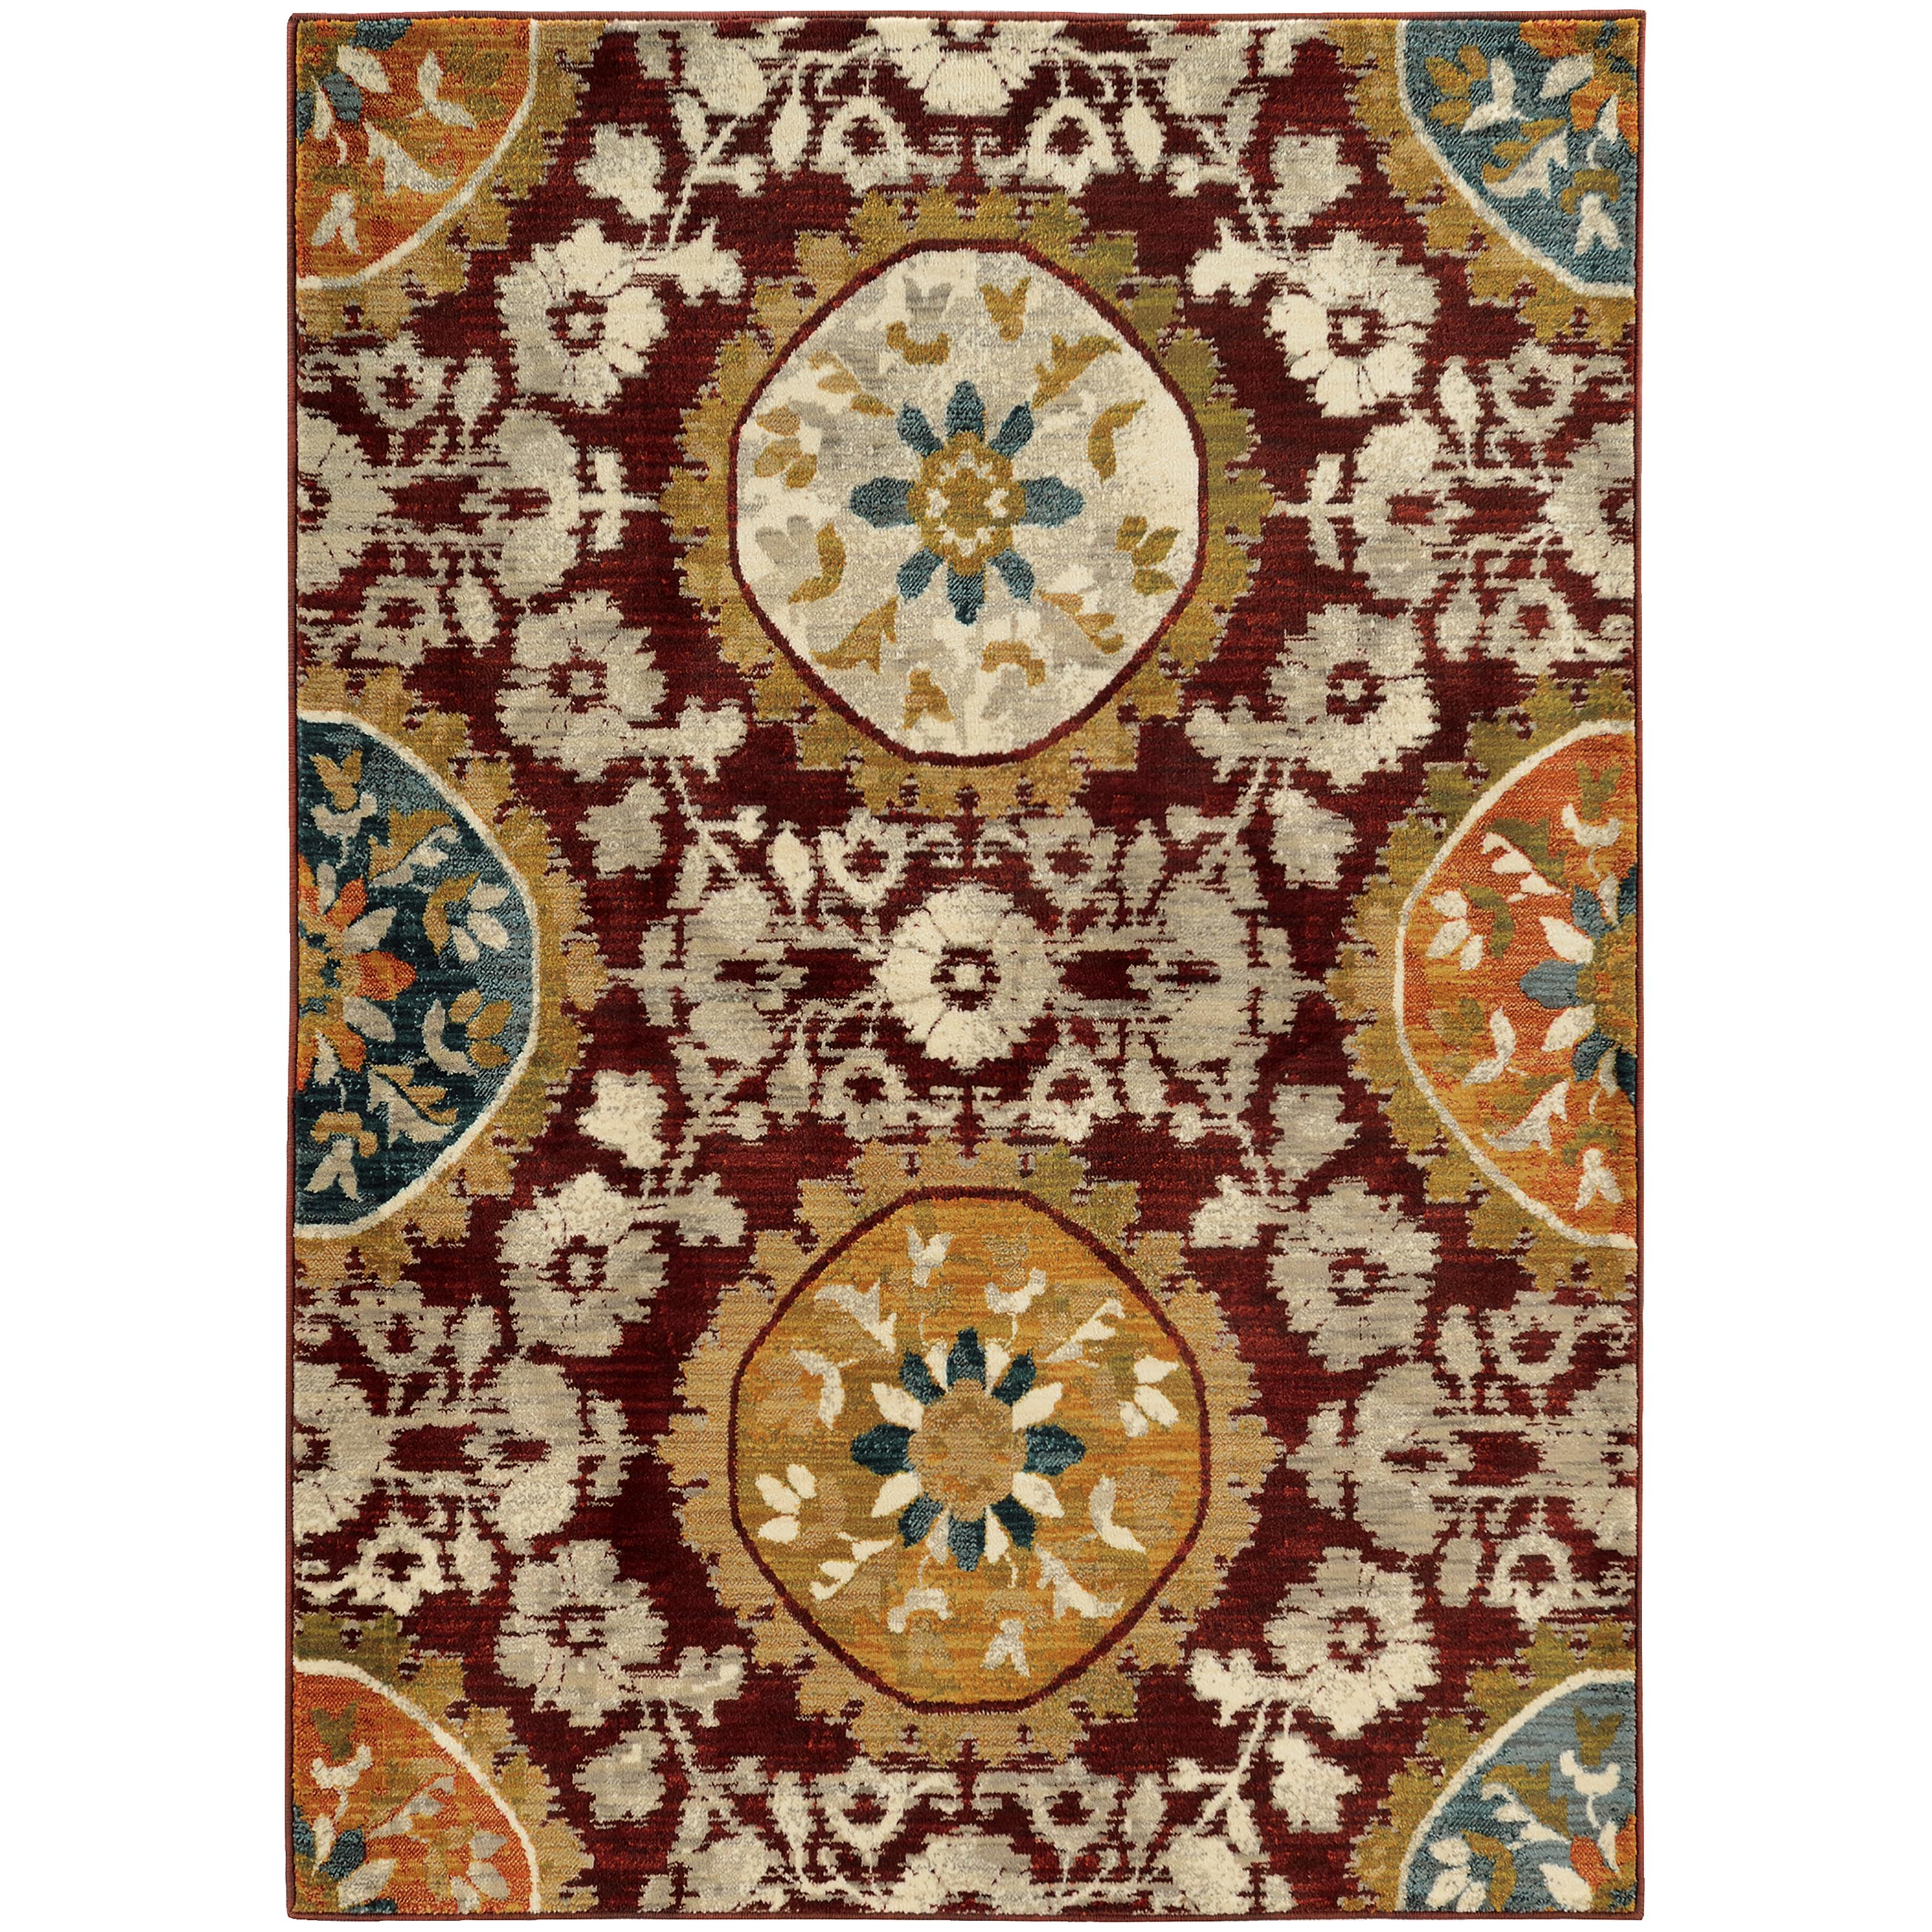 "Sedona 7'10"" X 10'10"" Rug by Oriental Weavers at Esprit Decor Home Furnishings"